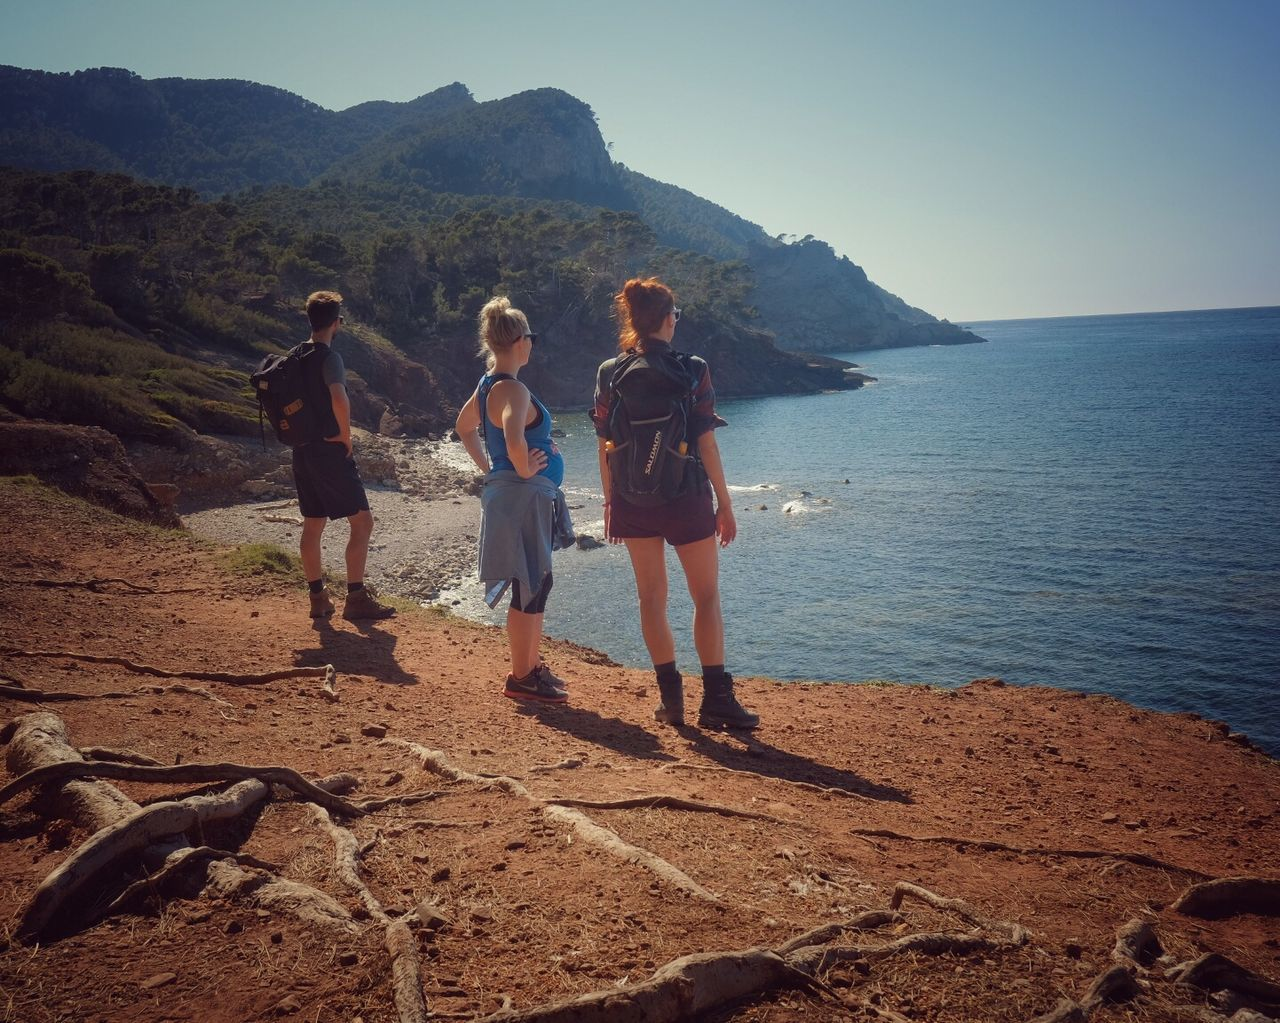 full length, real people, leisure activity, lifestyles, walking, mountain, togetherness, nature, vacations, sea, casual clothing, standing, outdoors, women, day, beauty in nature, water, sky, young adult, clear sky, young women, scenics, men, beach, friendship, people